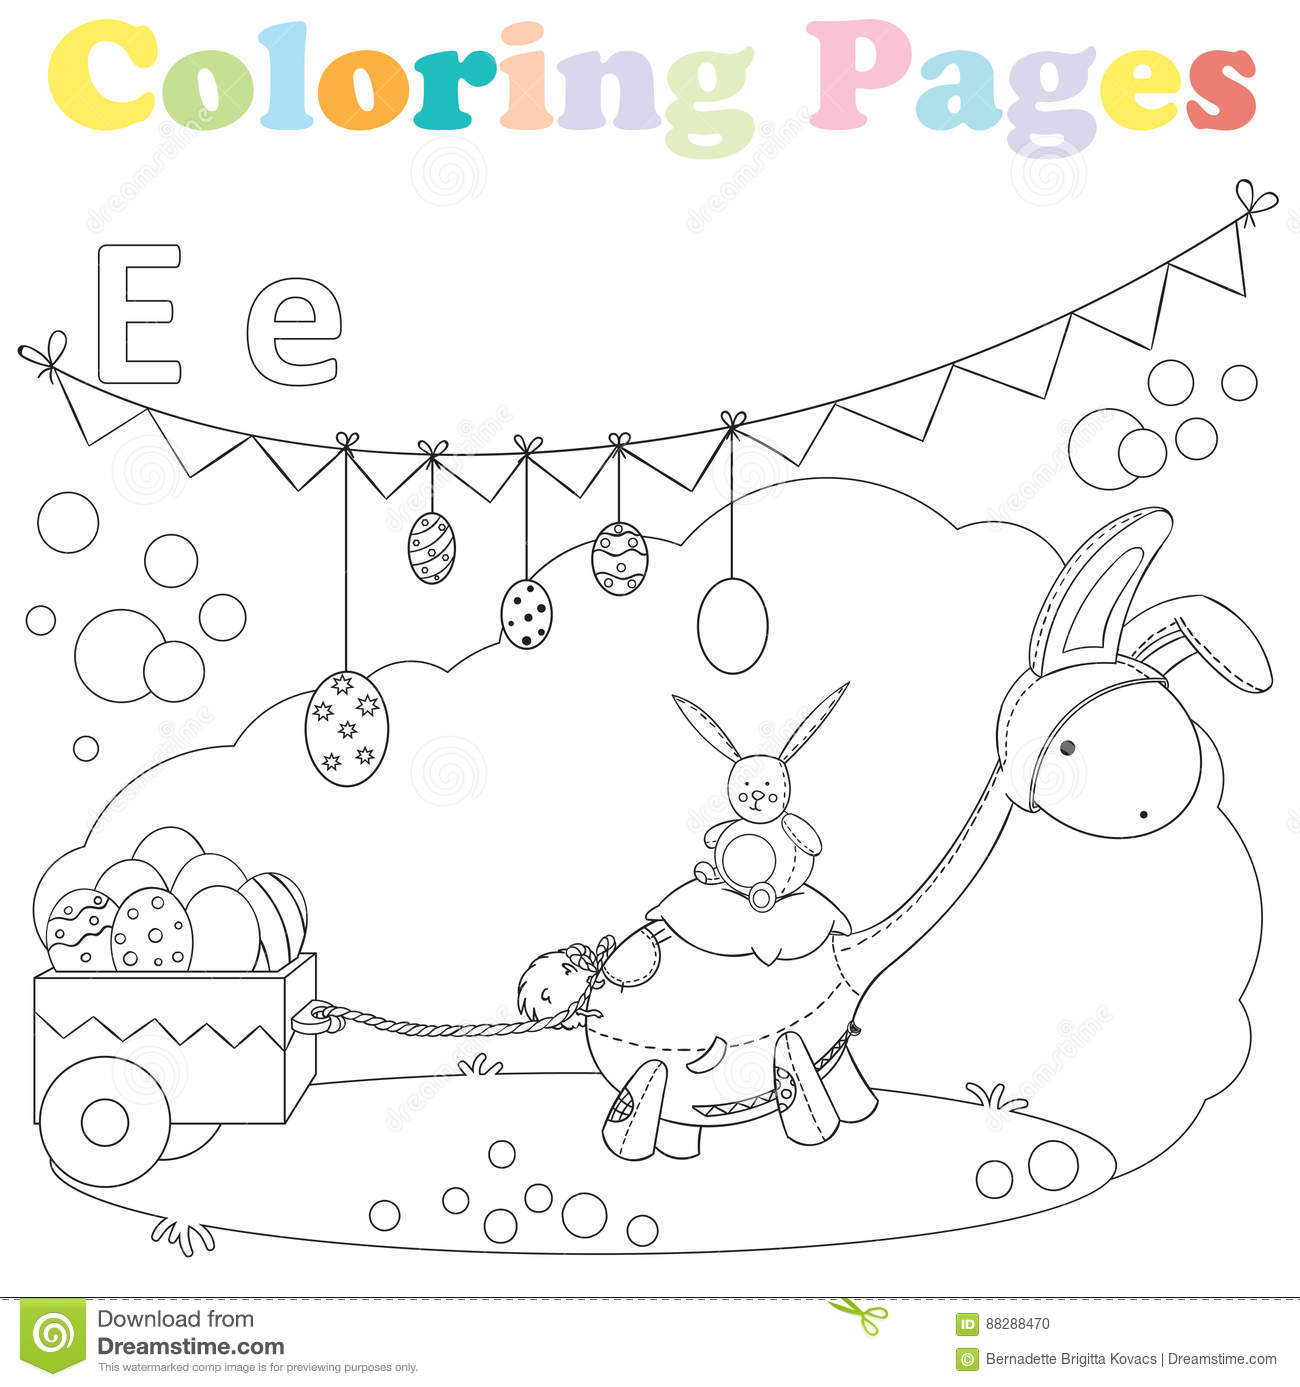 Dinosaur Egg Coloring Page Template Printable Beautiful Templates ...   1387x1300